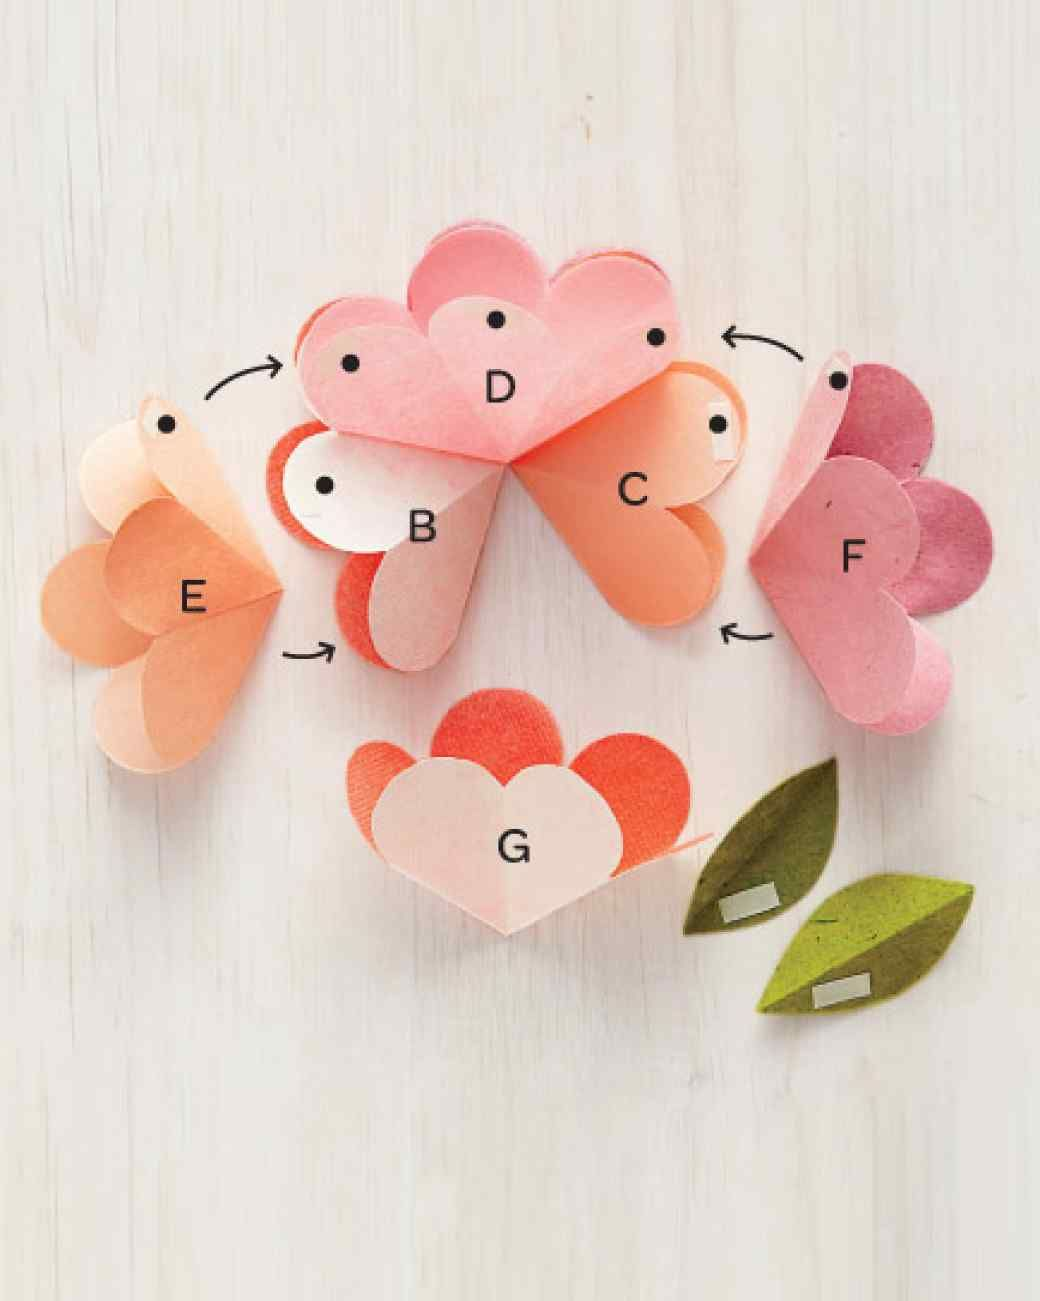 Pop Up Card For Mother S Day Pop Up Flower Cards Pop Up Greeting Cards Pop Up Cards